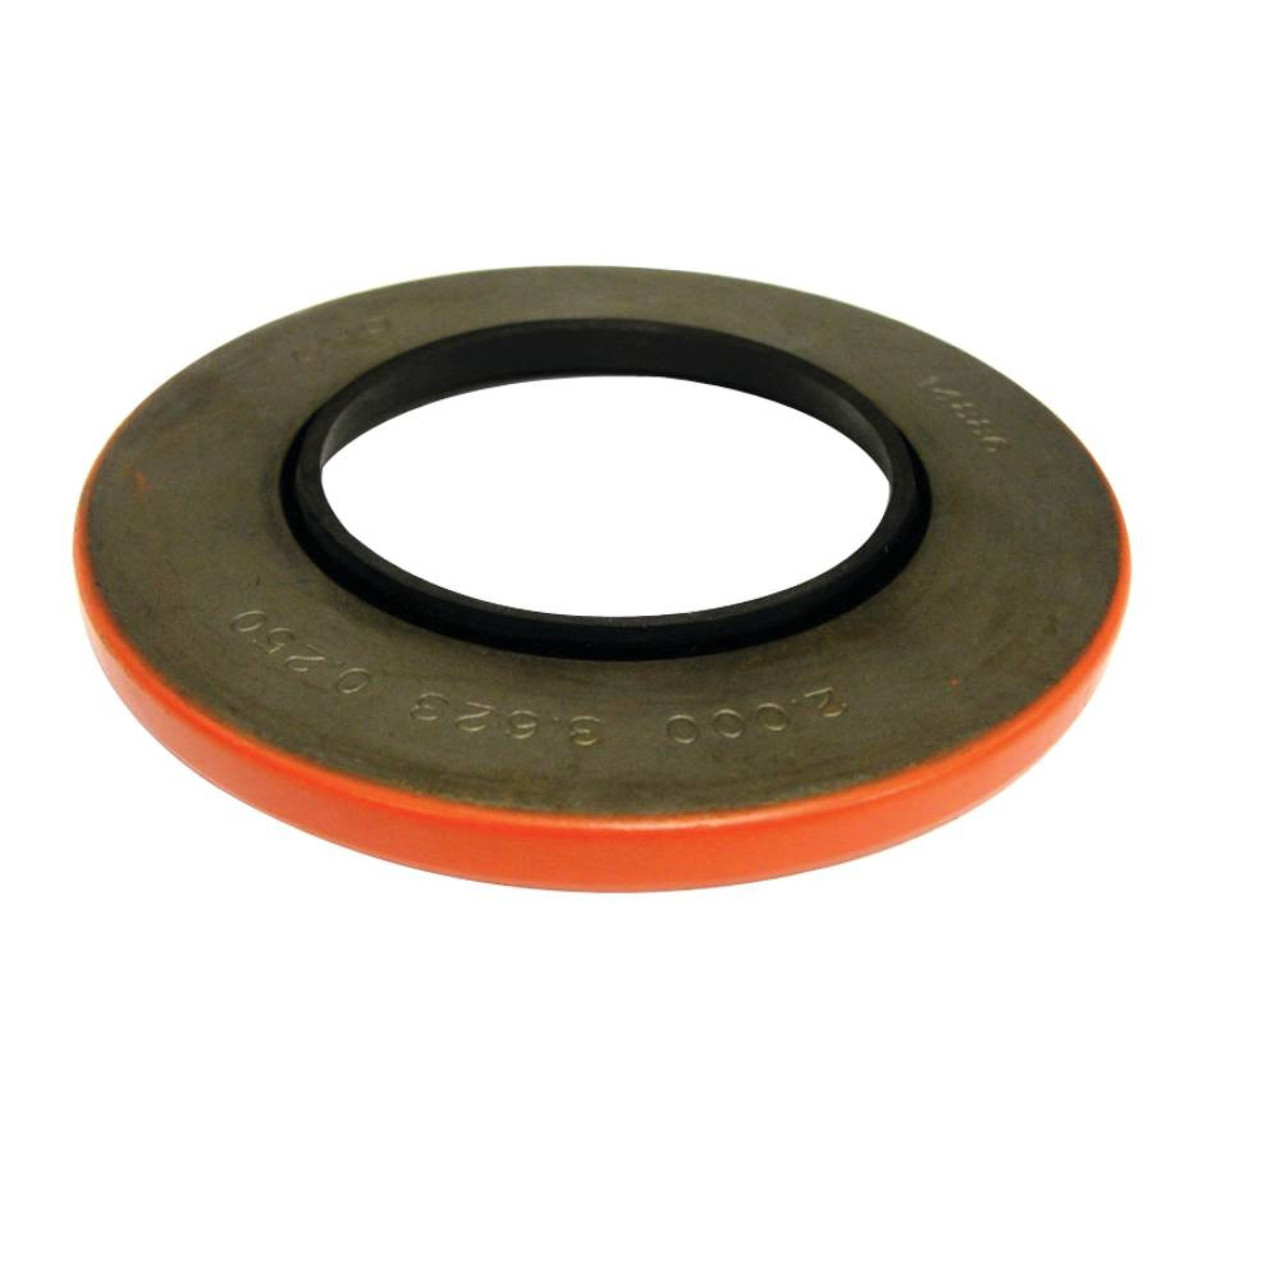 Tractor Wheel Seals : New wheel hub seal for tractor am